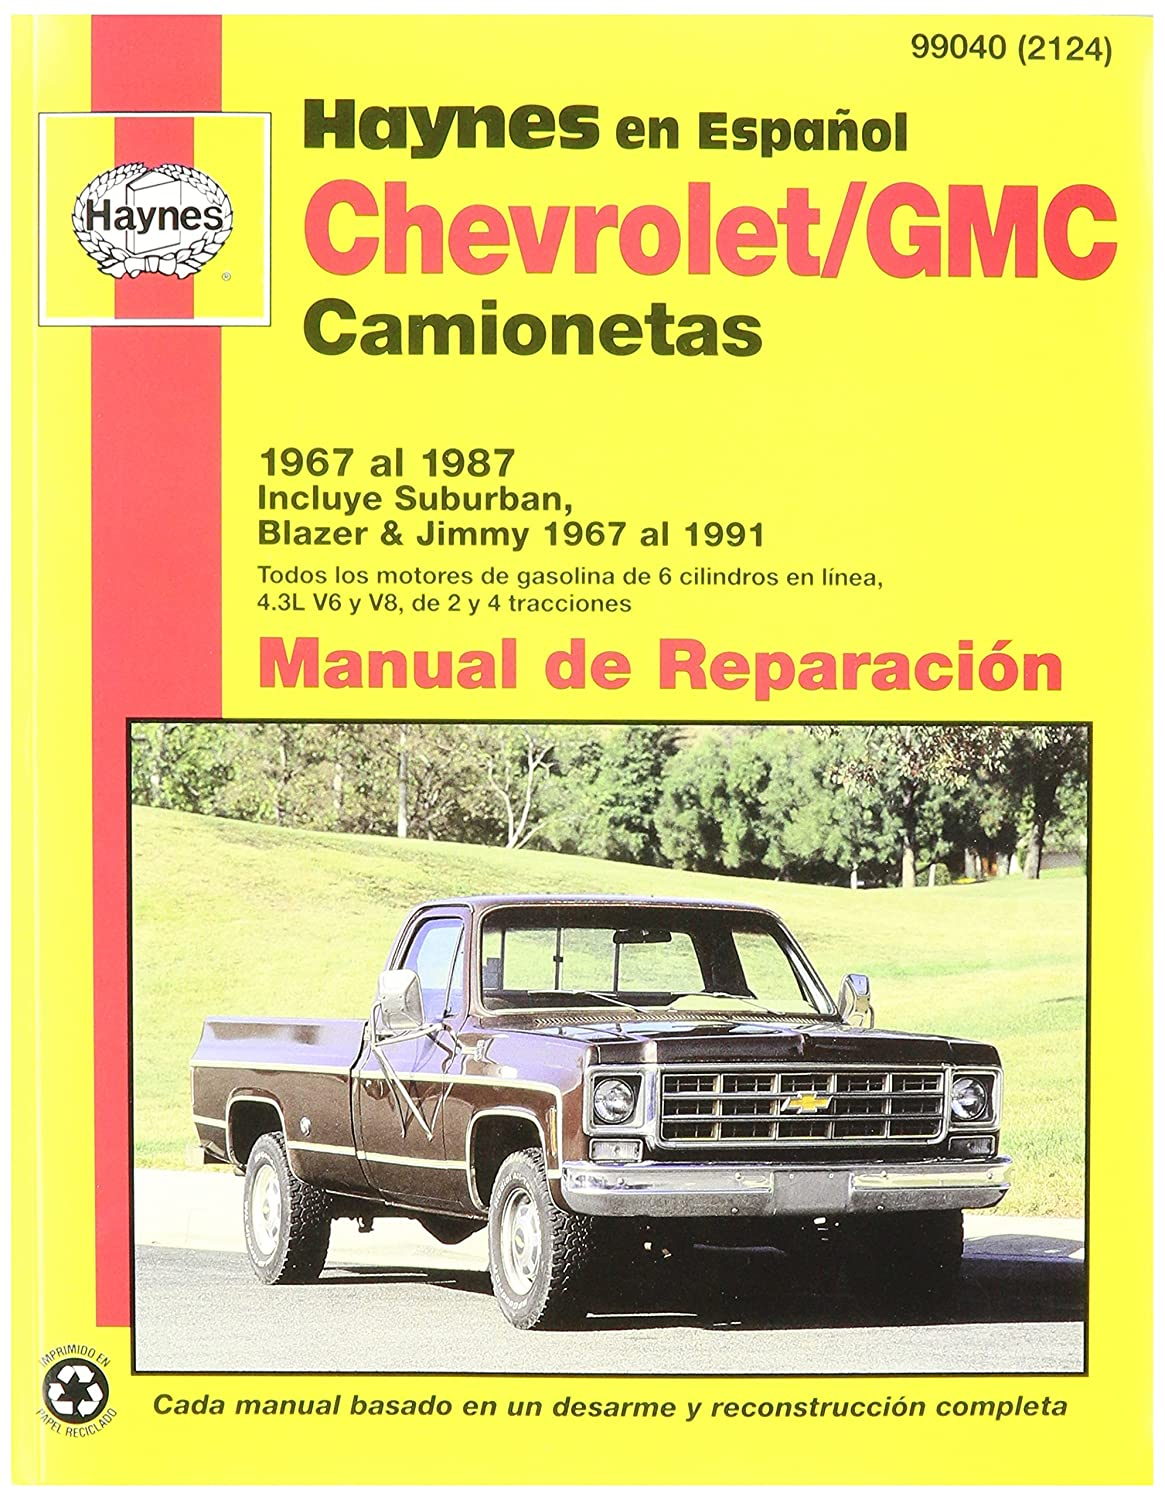 Amazon.com: Haynes Chevrolet/GMC Camionetas (67 - 91) Spanish Repair Manual  (99040): Automotive